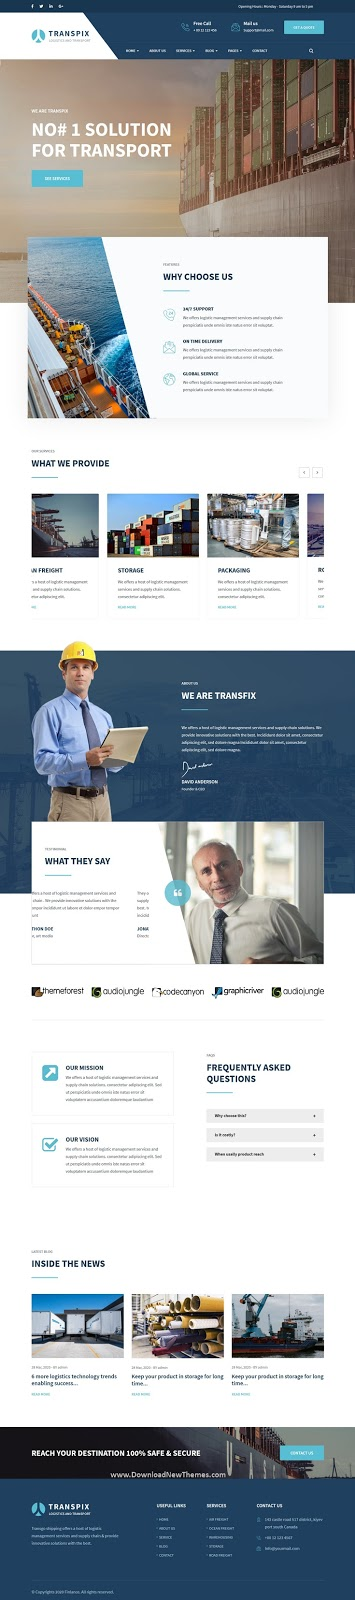 Transport, Logistics & Warehouse Drupal Theme With Page Builder